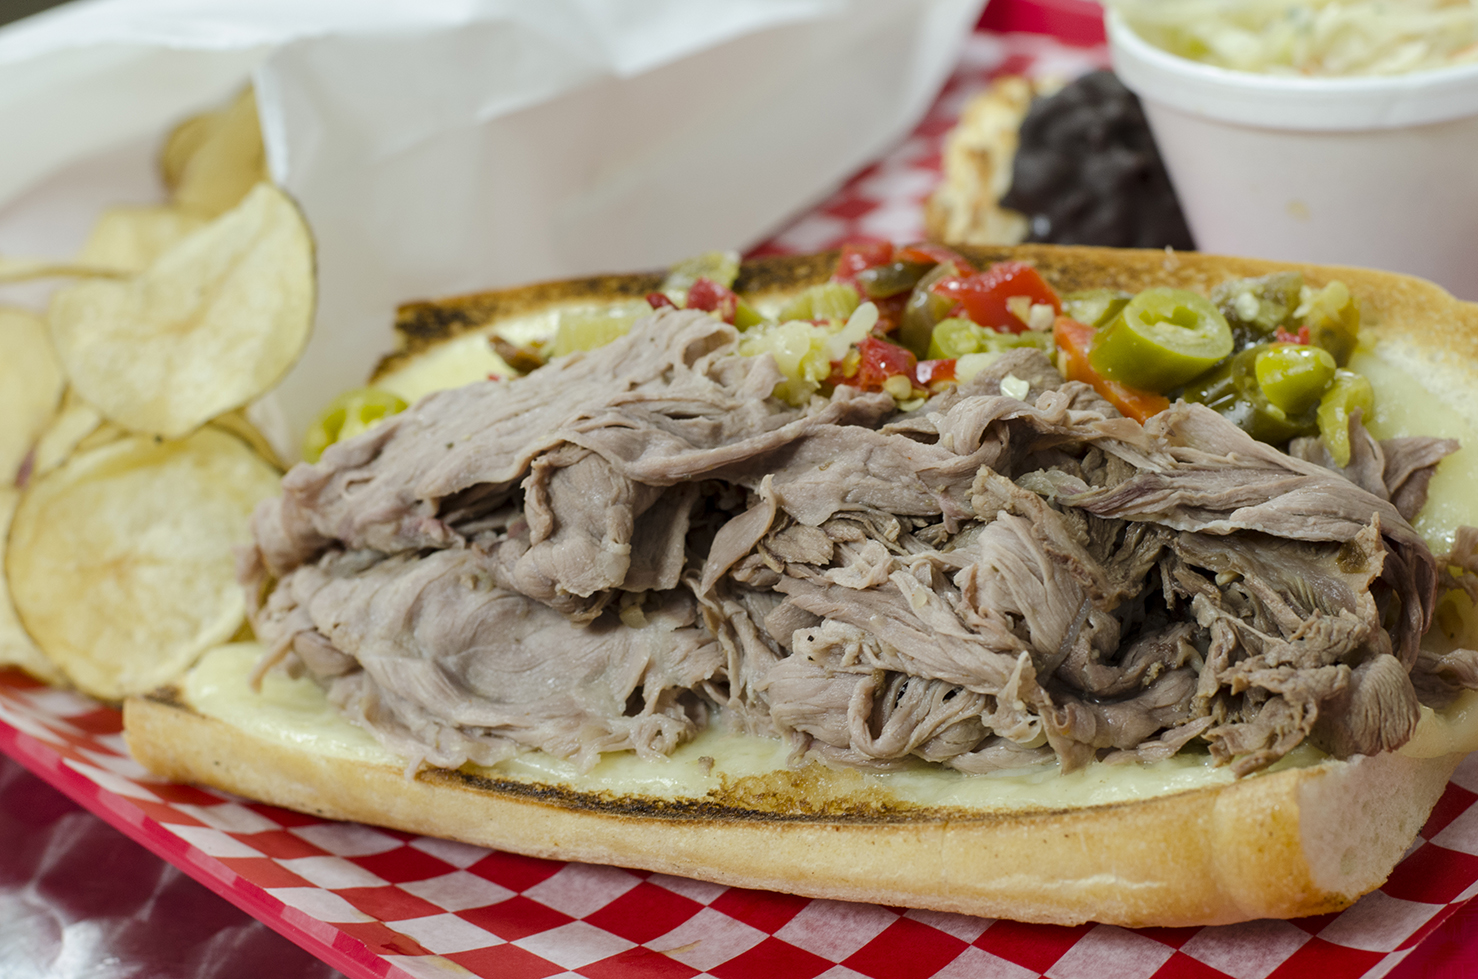 The Chicago-style Italian Beef from Chatham Street Deli.